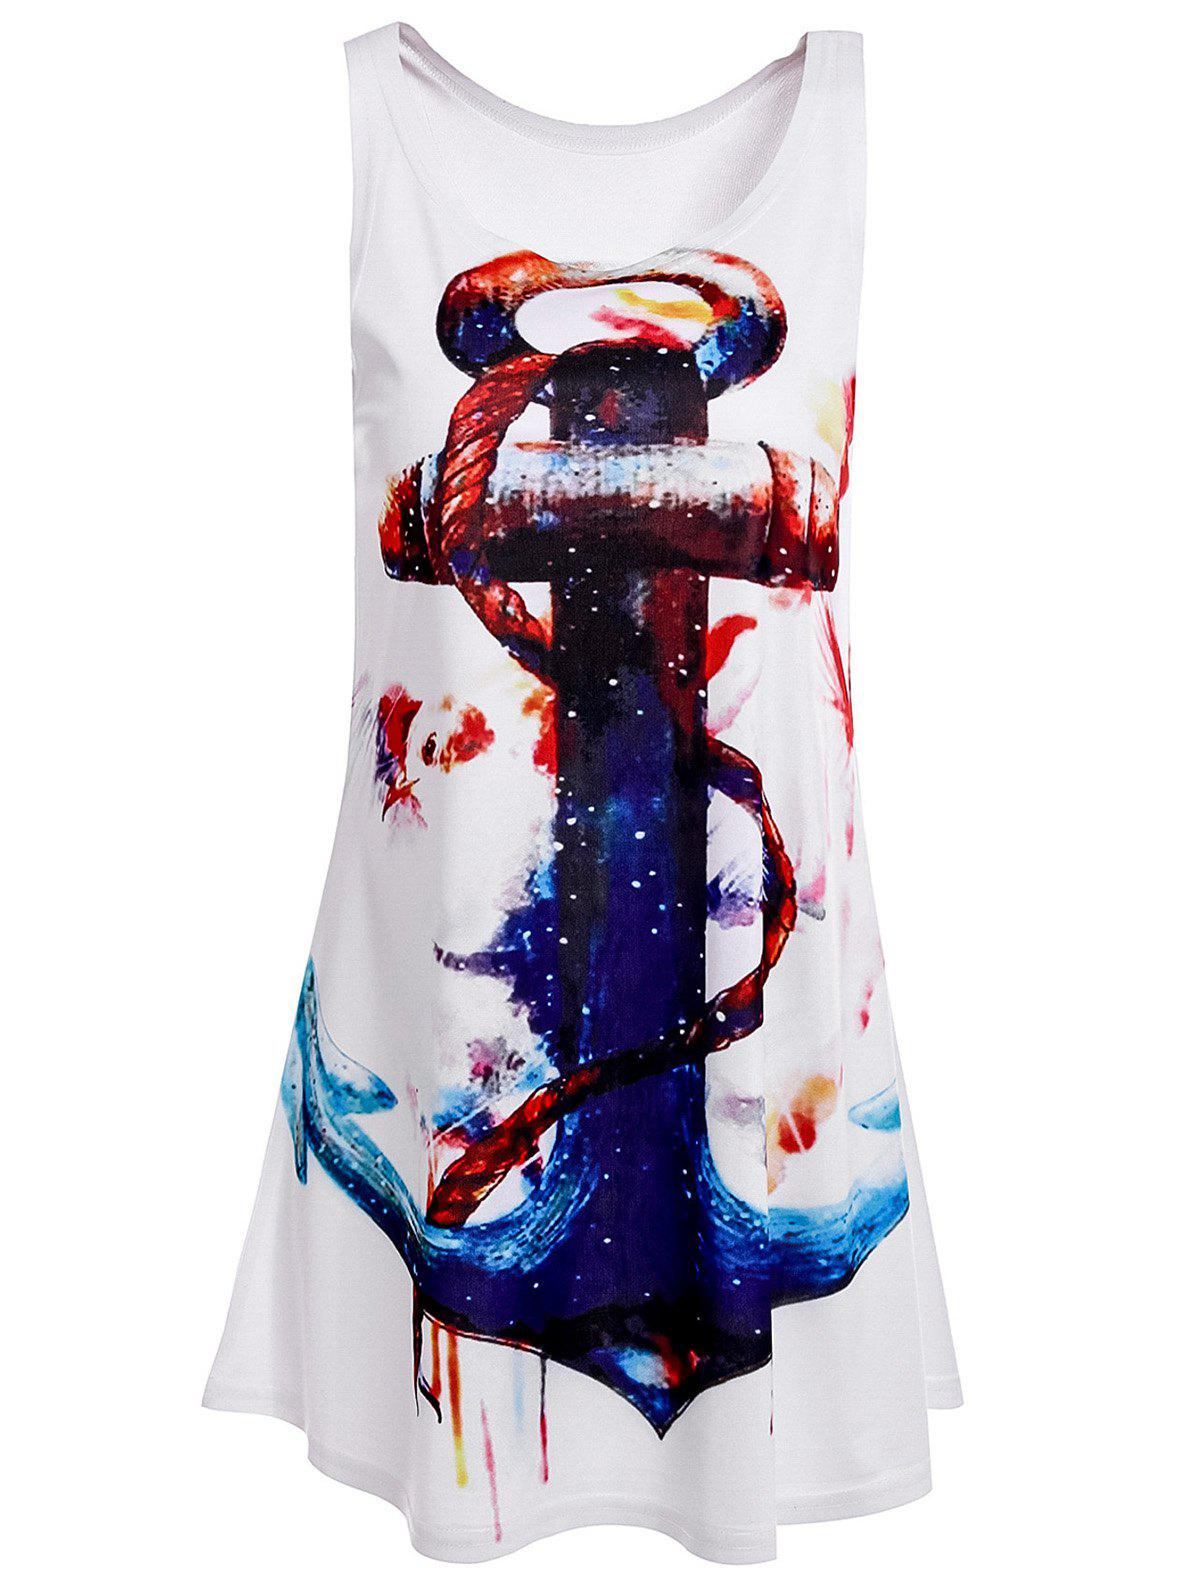 Casual Anchor Print Scoop Neck Sleeveless T-Shirt For Women - WHITE ONE SIZE(FIT SIZE XS TO M)